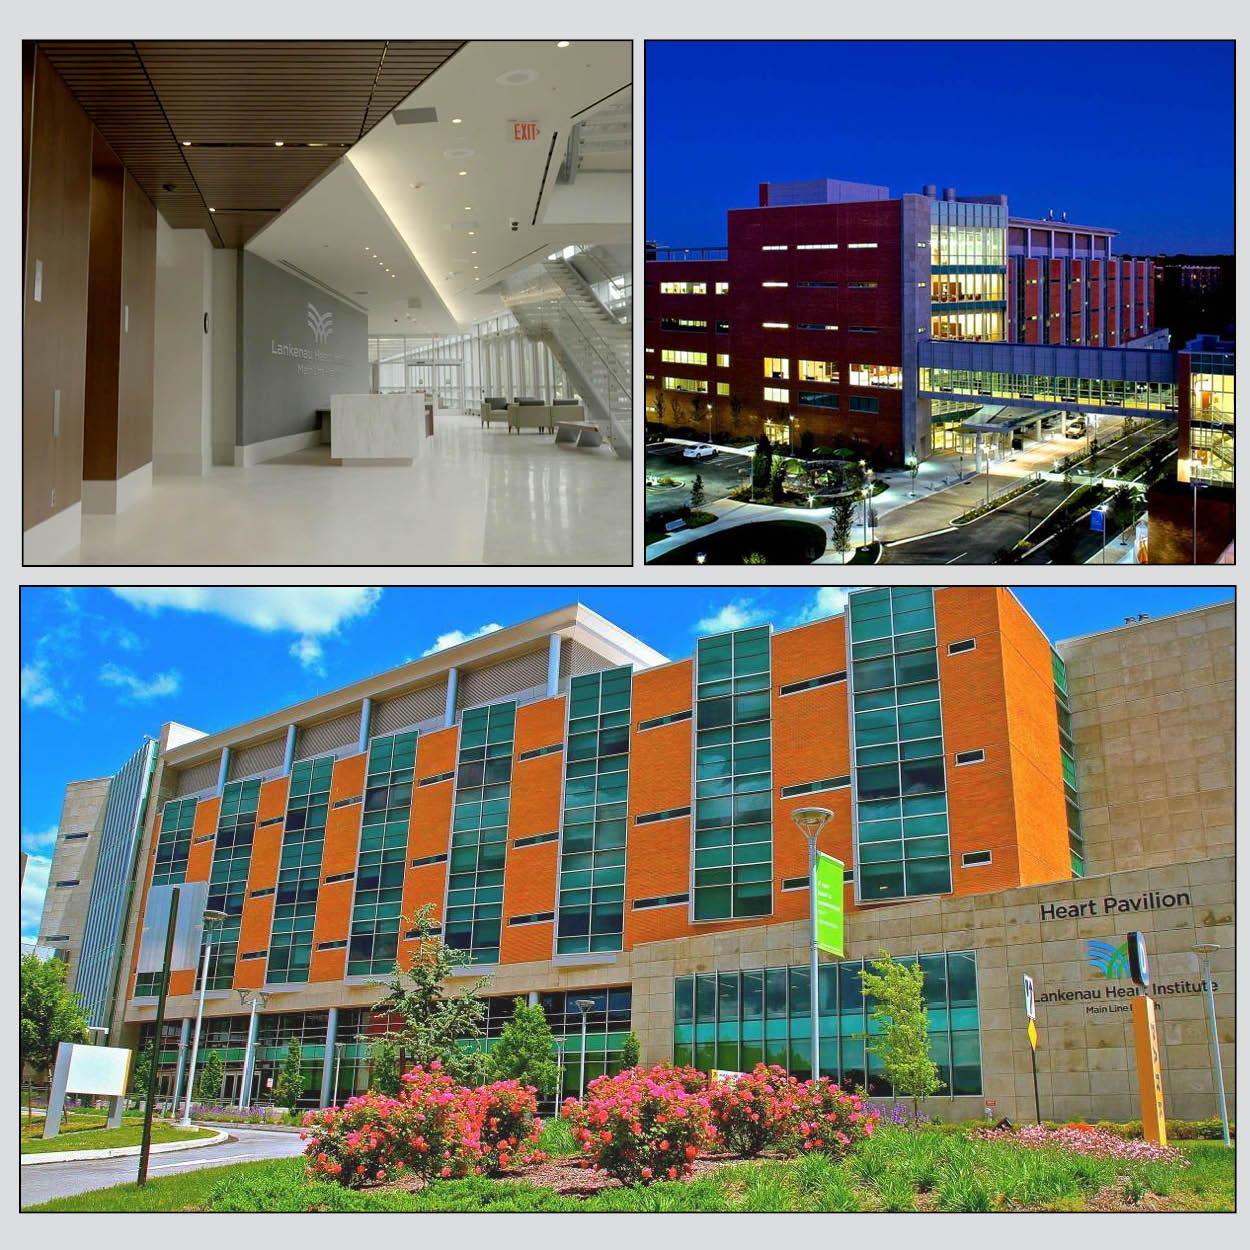 Lankenau Medical Center | 100 Hospitals with Great Heart